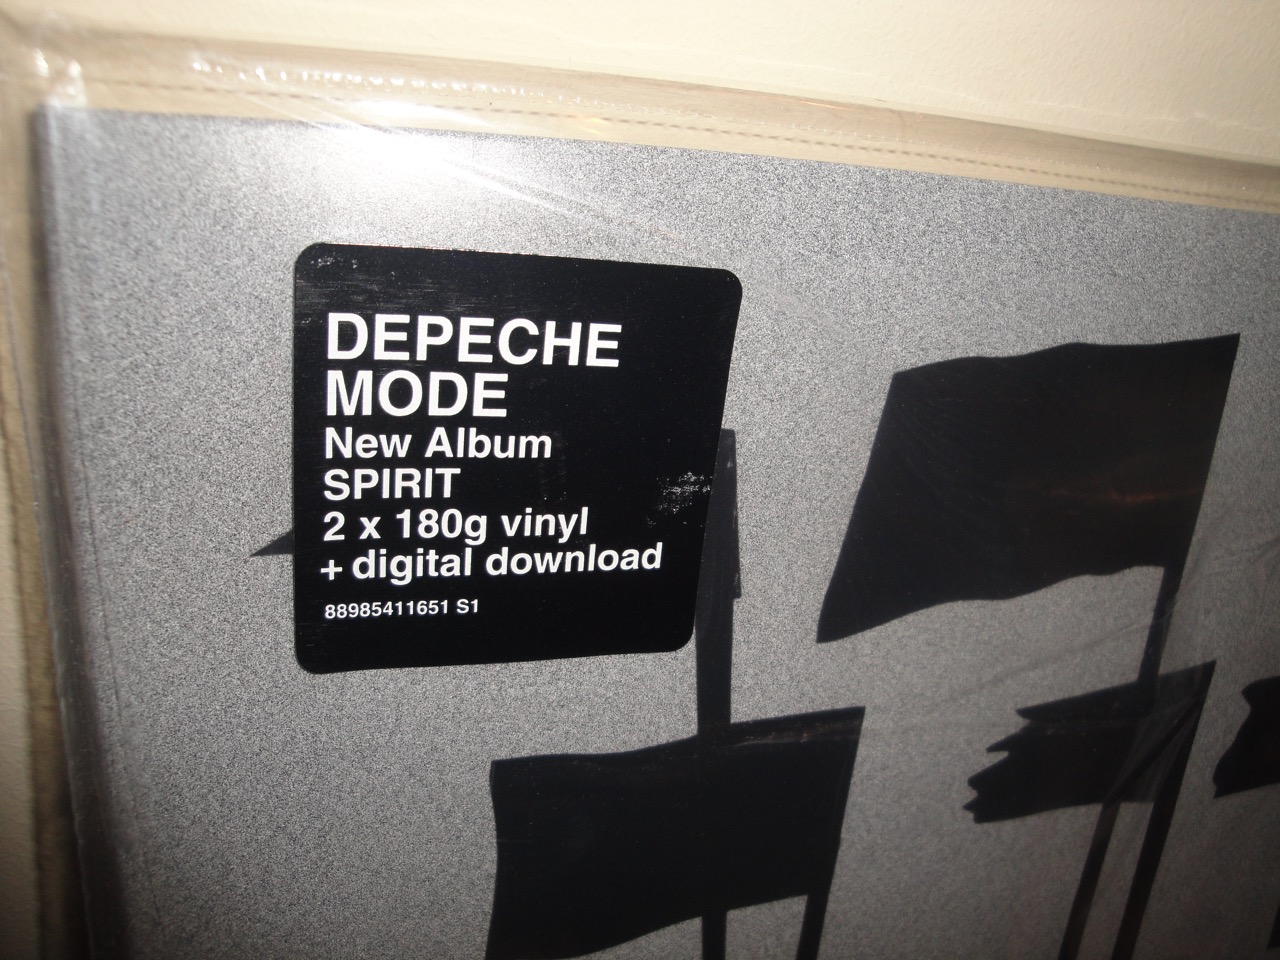 Depeche Mode - Spirit - 2XLP 180 Gram Vinyl, Gatefold w Download